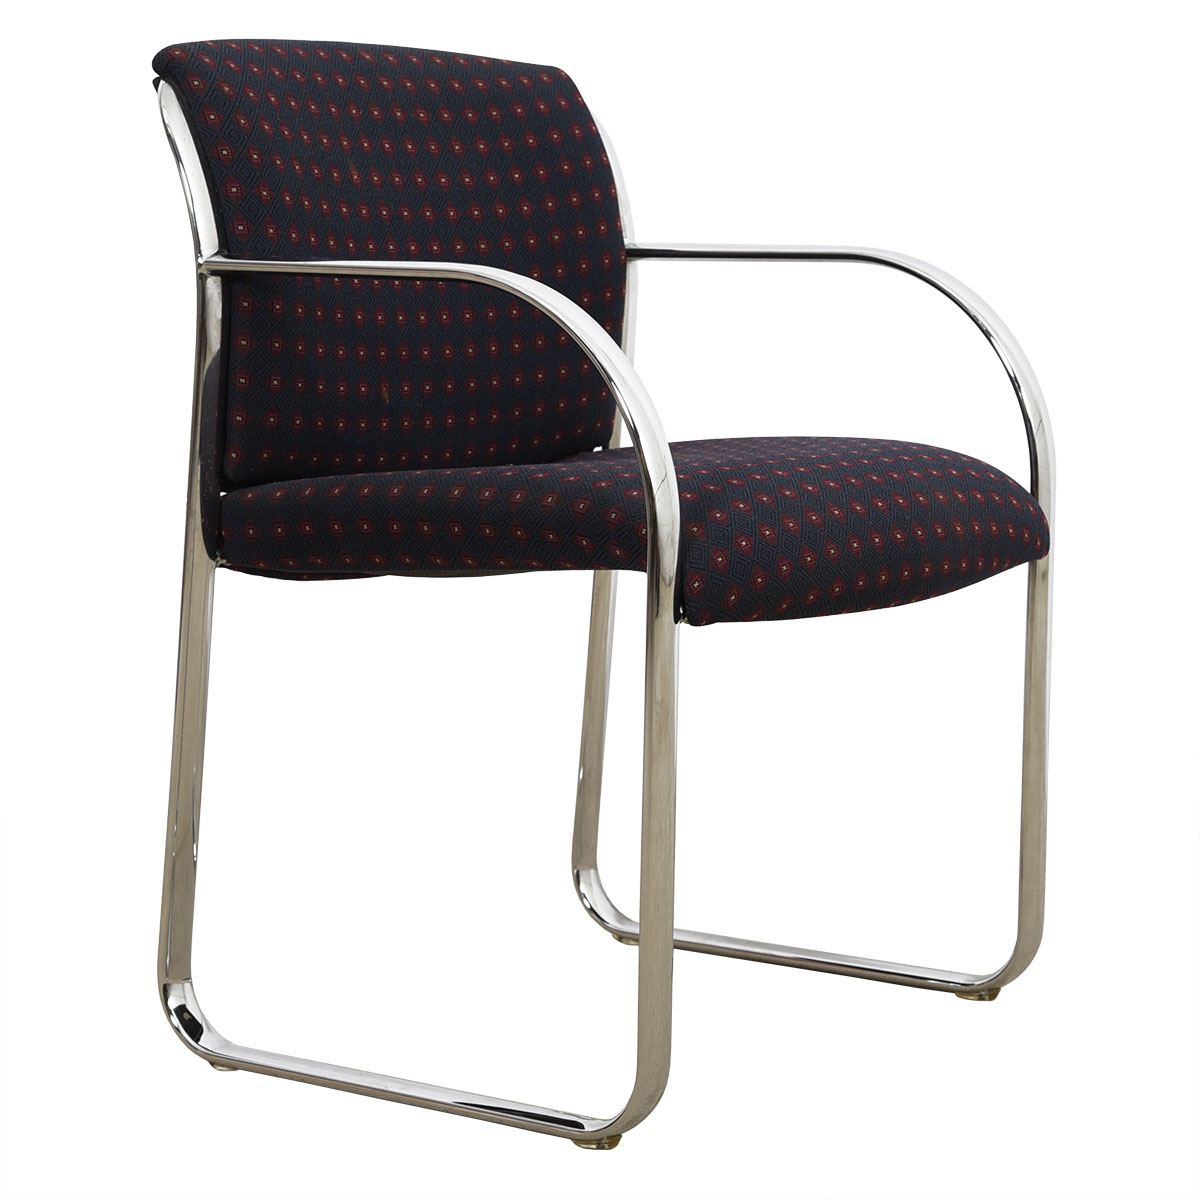 Modernist Chrome Chair with Red-on-Navy Foulard Upholstery